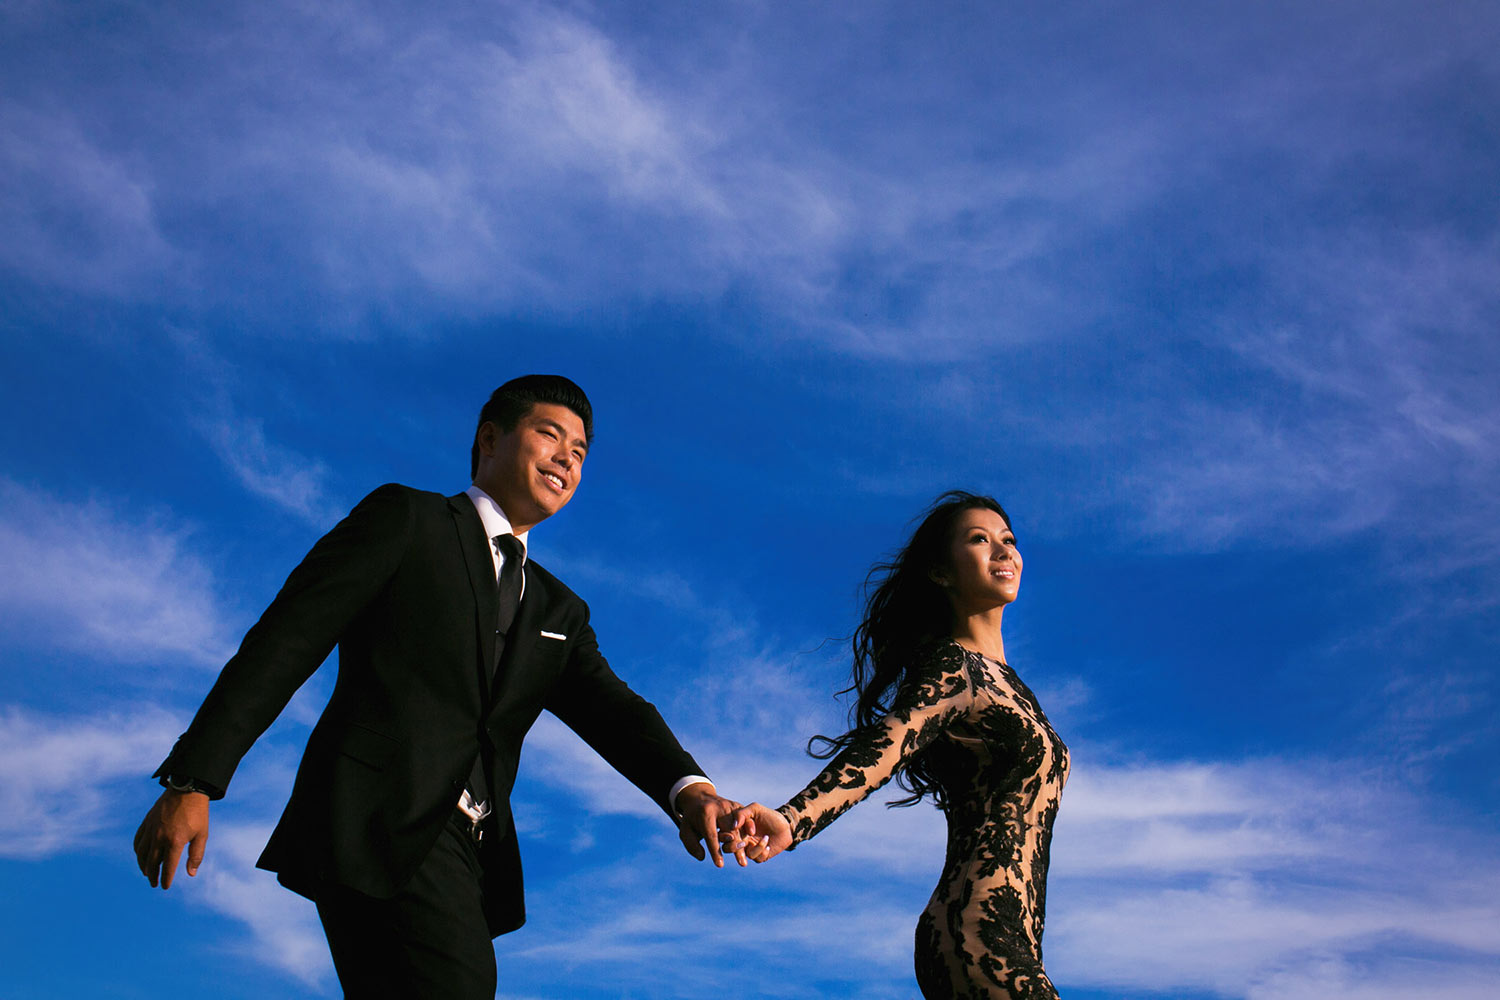 Asian wedding engagement photo session at Disney Concert Hall in Los Angeles